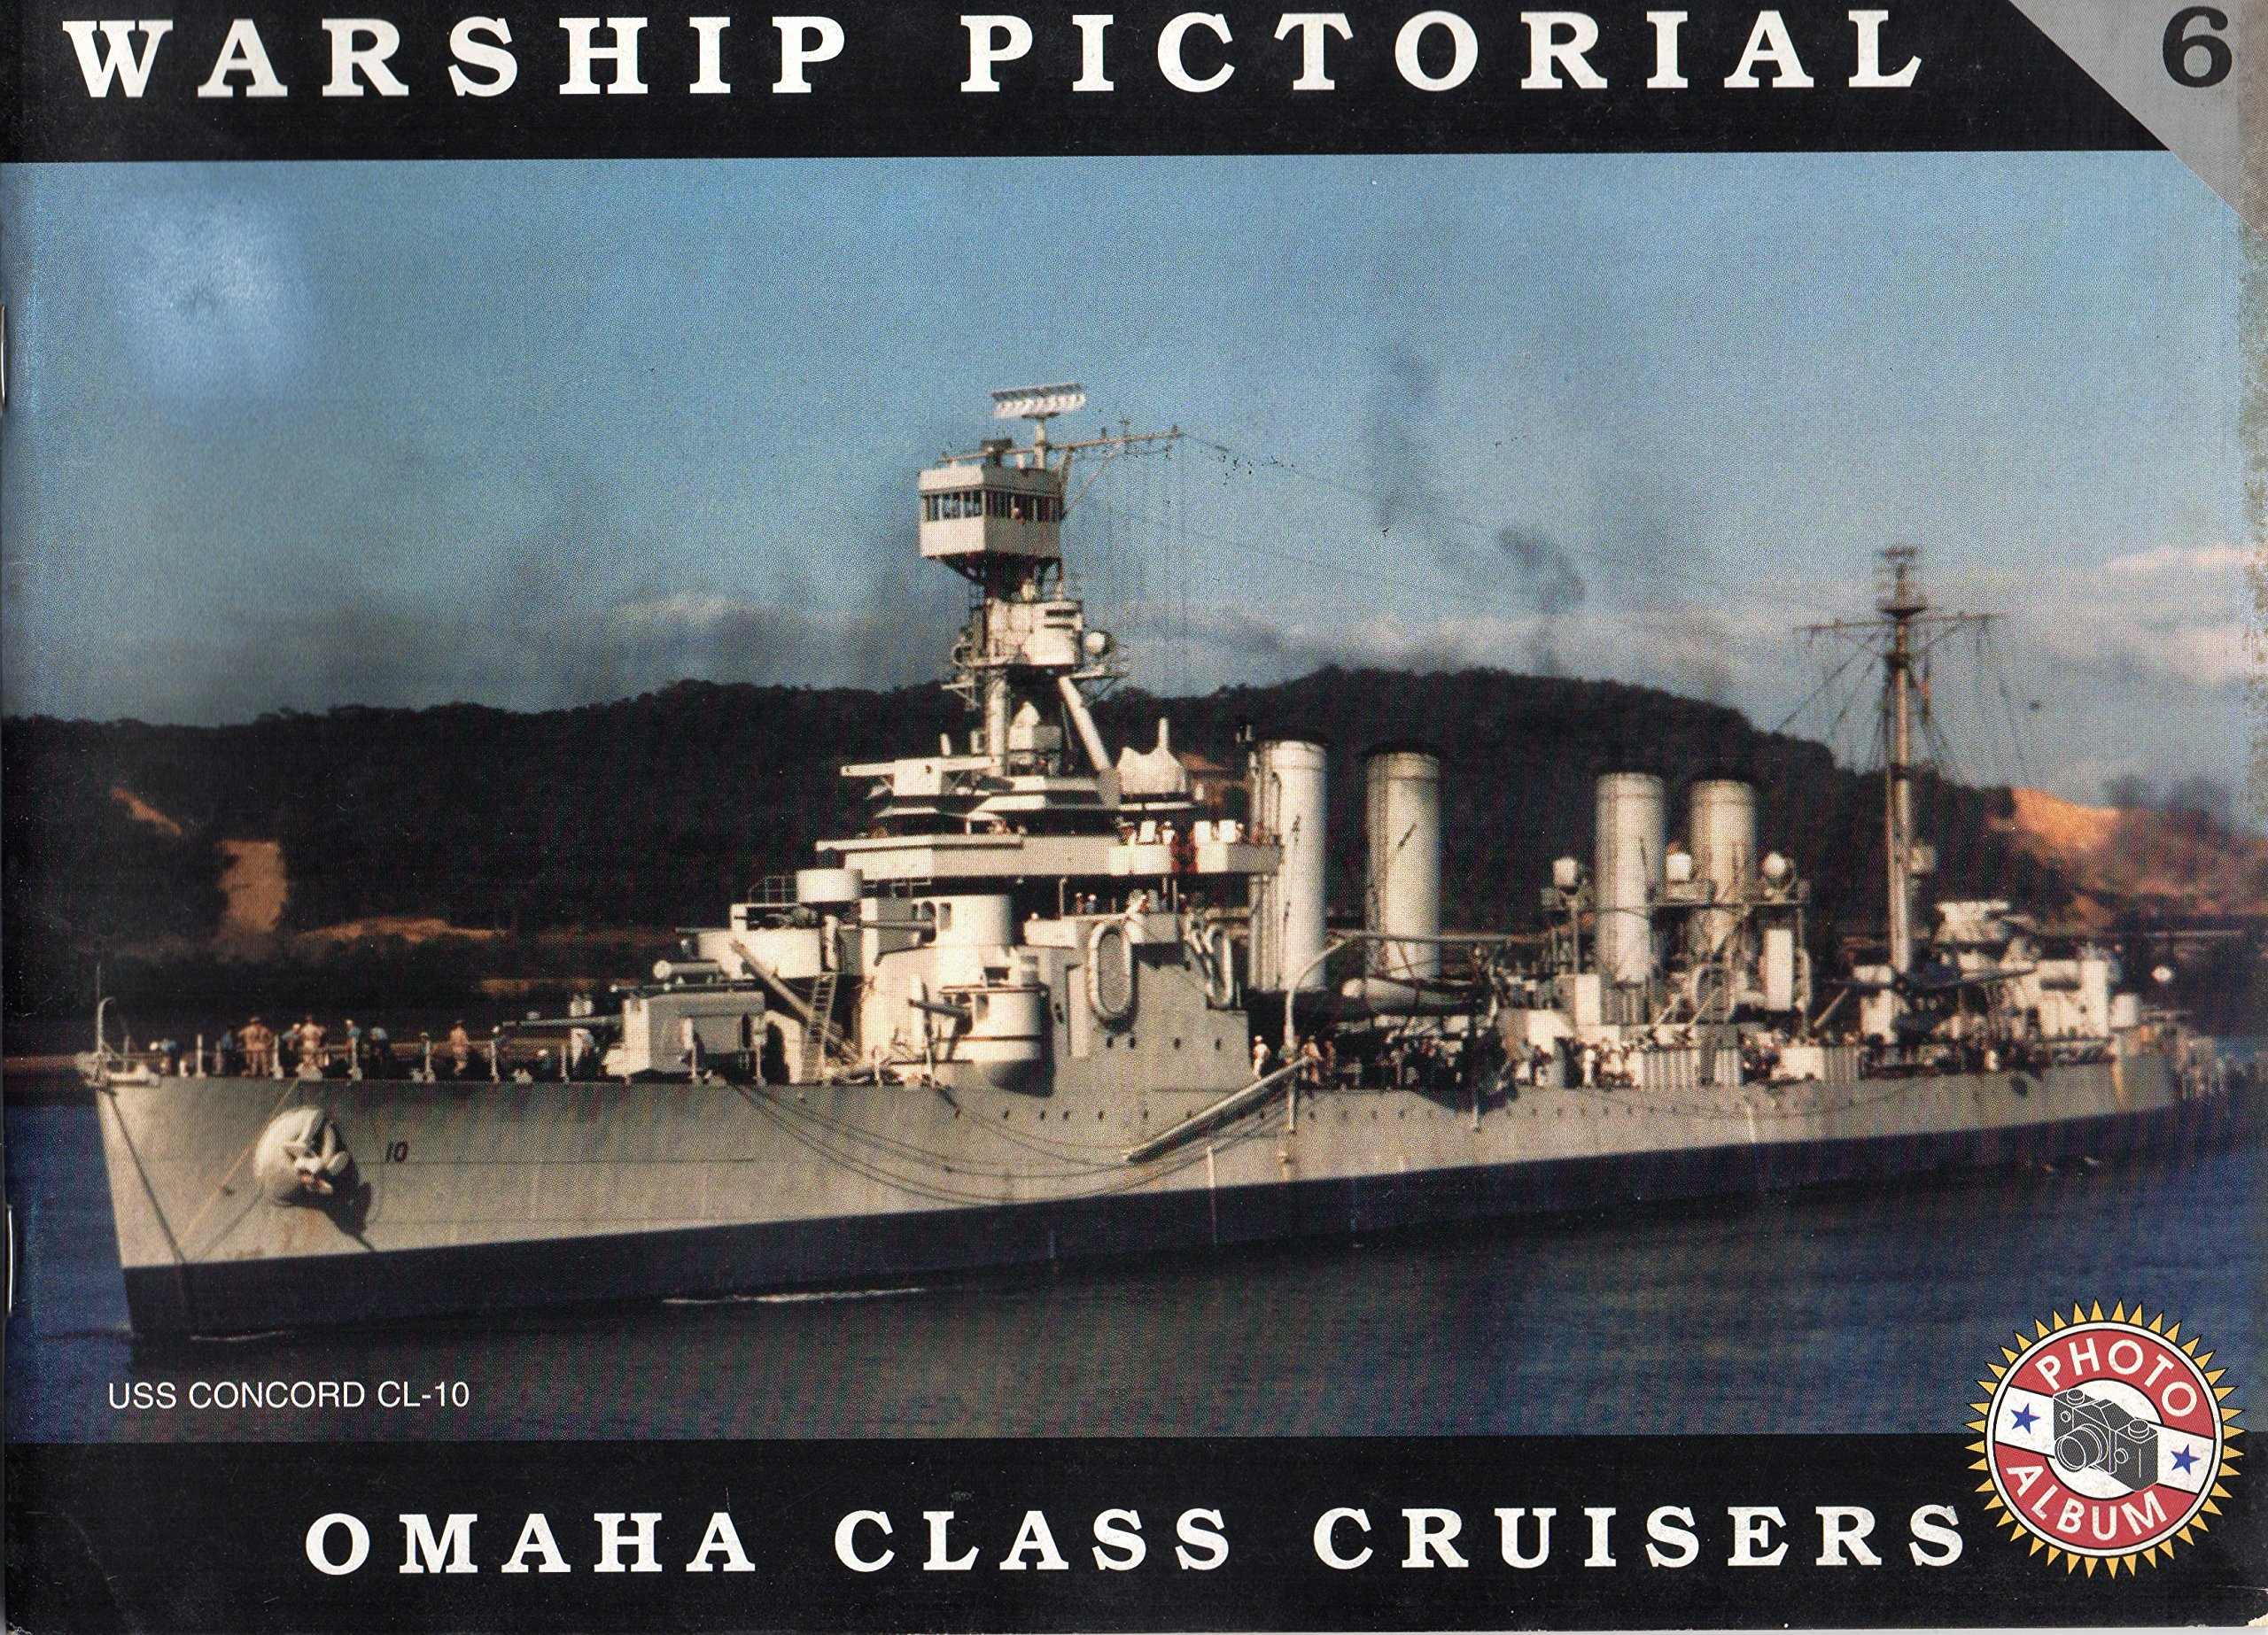 Warship Pictorial No. 6 - USS Omaha Class Cruisers